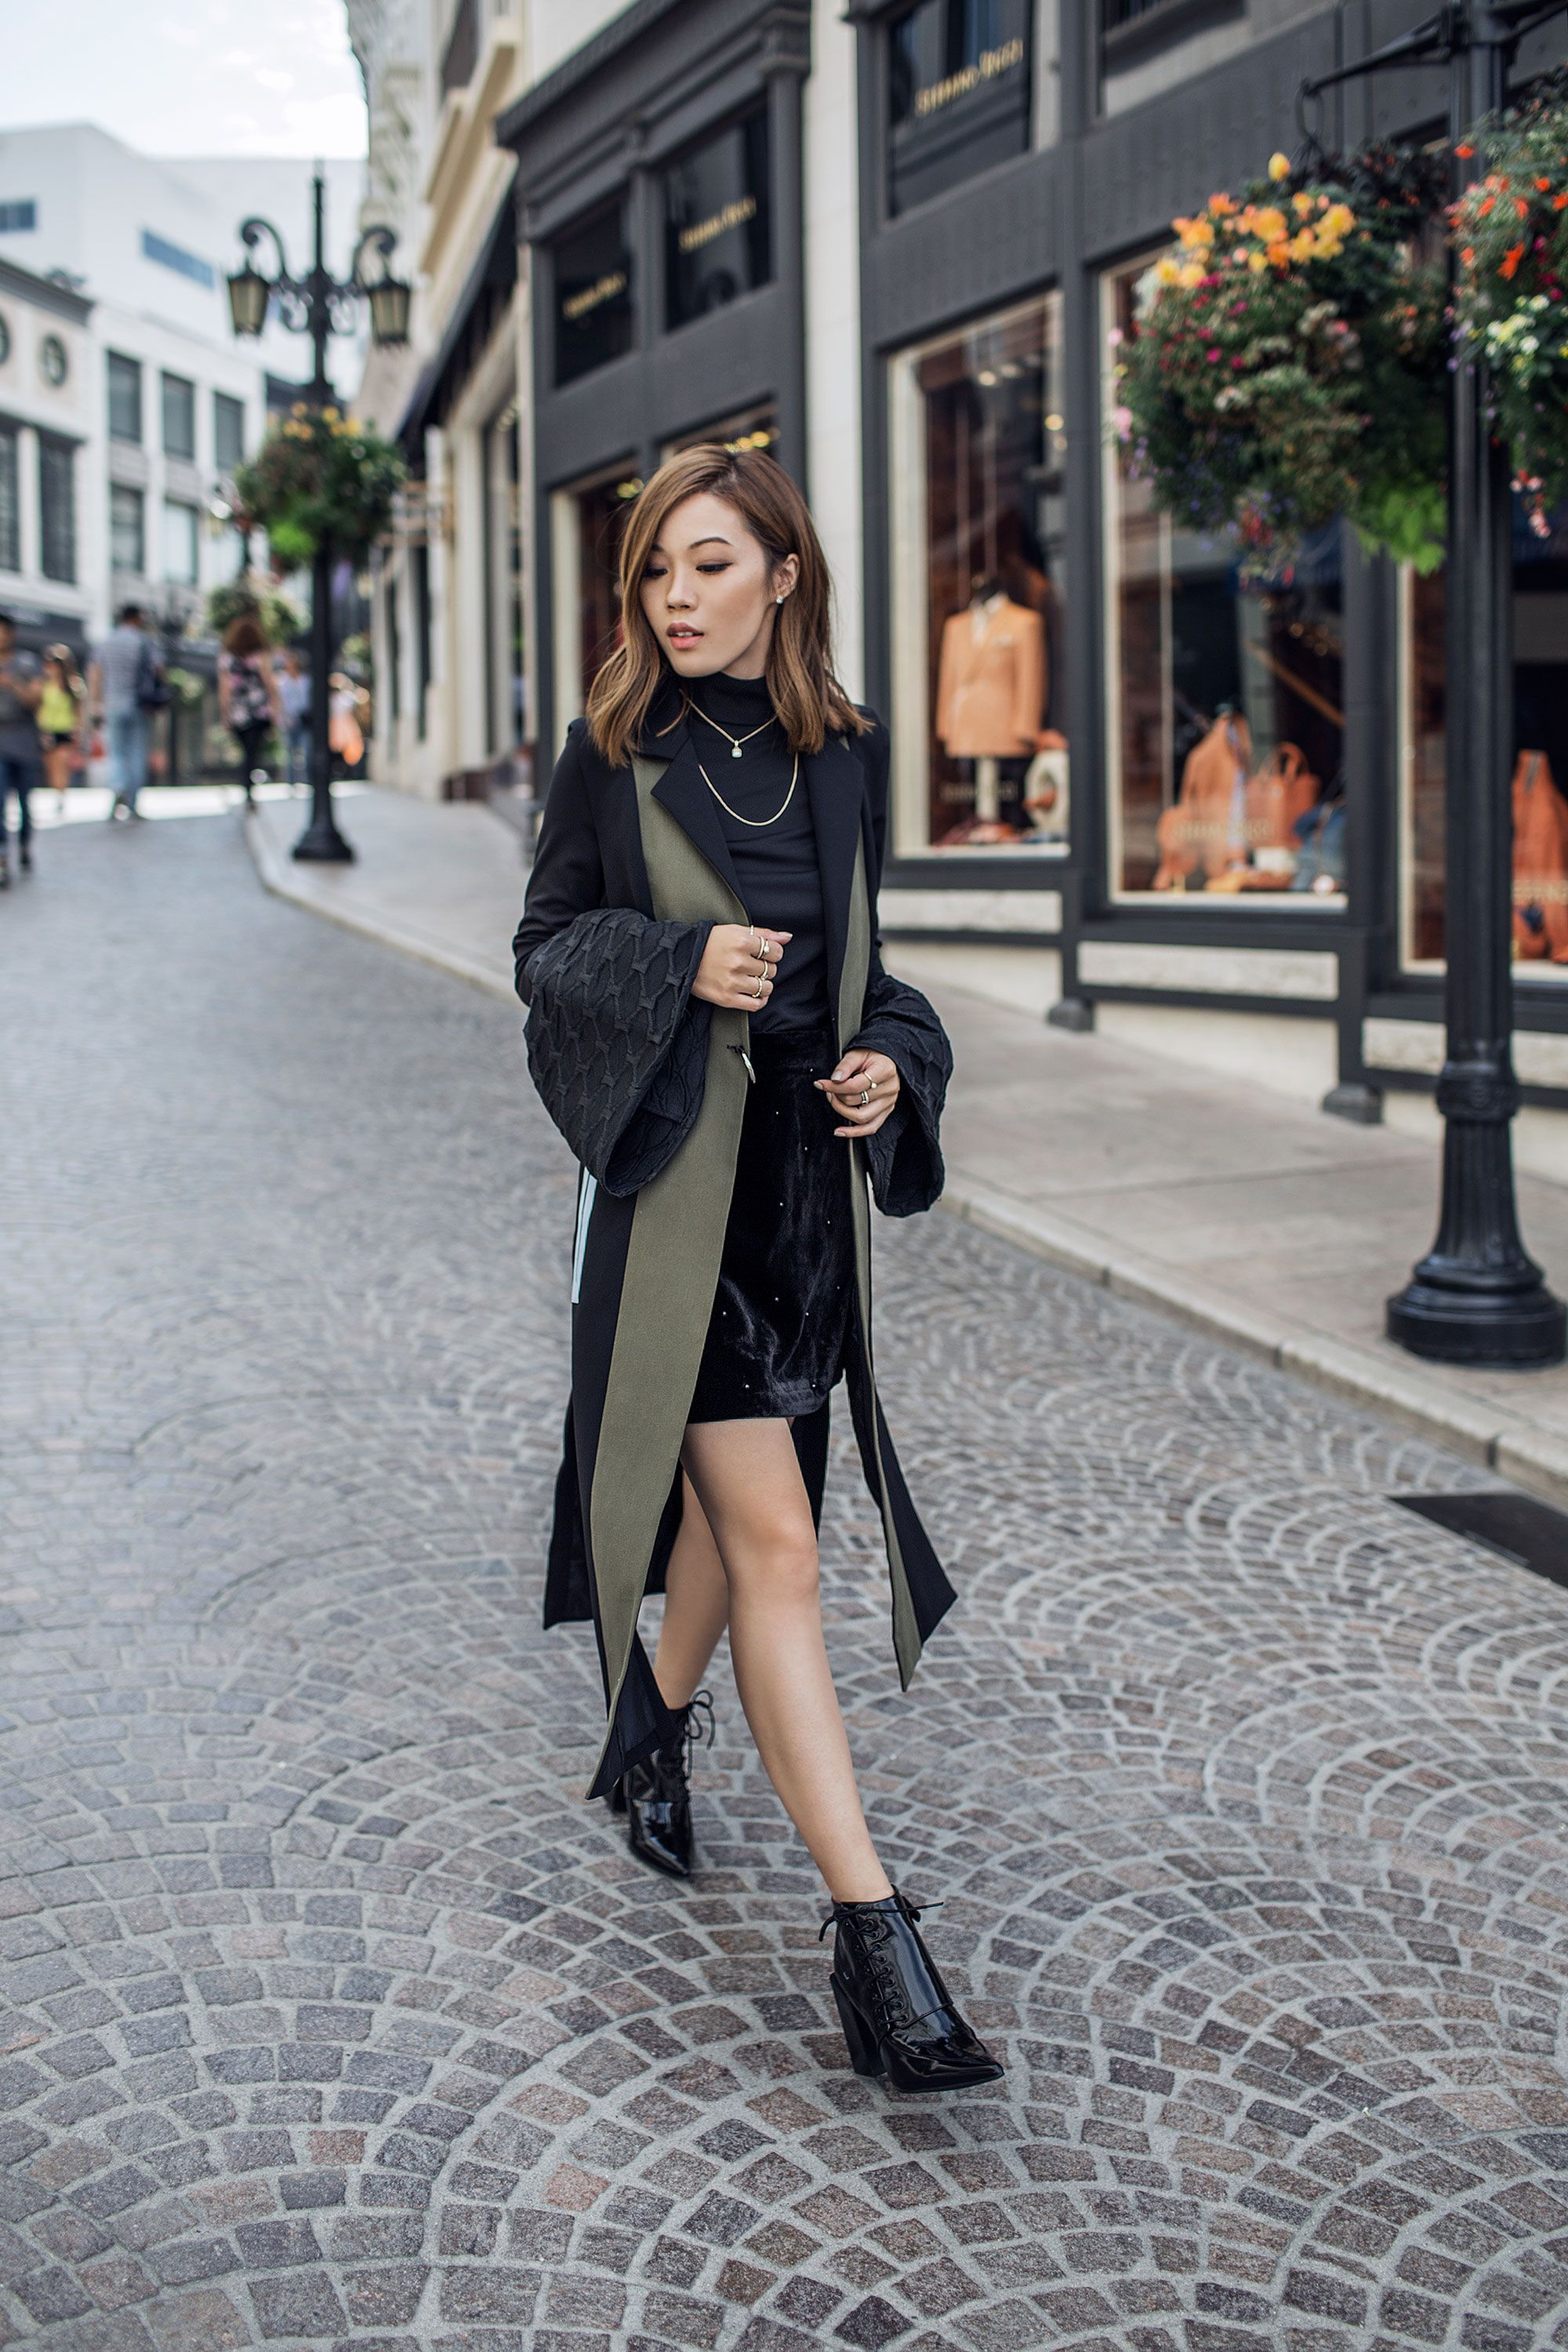 """<p>If you're into transitional dressing, go for an outfit that's a bit more dramatic, like this black-and olive-layered look. """"The exaggerated sleeves on the sweater elevate the entire look,"""" says Tsang. """"The velvet skirt and layered [14k] gold necklaces make it even more glamorous, and the long green vest and patent leather booties gives it an edgy feel.""""</p><p><em data-redactor-tag=""""em"""">Asilio Vest and Top&#x3B; C/Meo Collective Skirt&#x3B; Senso Boots&#x3B; PANDORA Jewelry Necklaces, price varies, <a href=""""http://estore-us.pandora.net/en-us/necklaces/?cid=BrndMedia_Drop6_Dec_2016_MarieClaire_CustomContent_NativeInfluenceArticles_Necklaces_Collection"""" target=""""_blank"""" data-tracking-id=""""recirc-text-link"""">pandora.net</a></em></p>"""